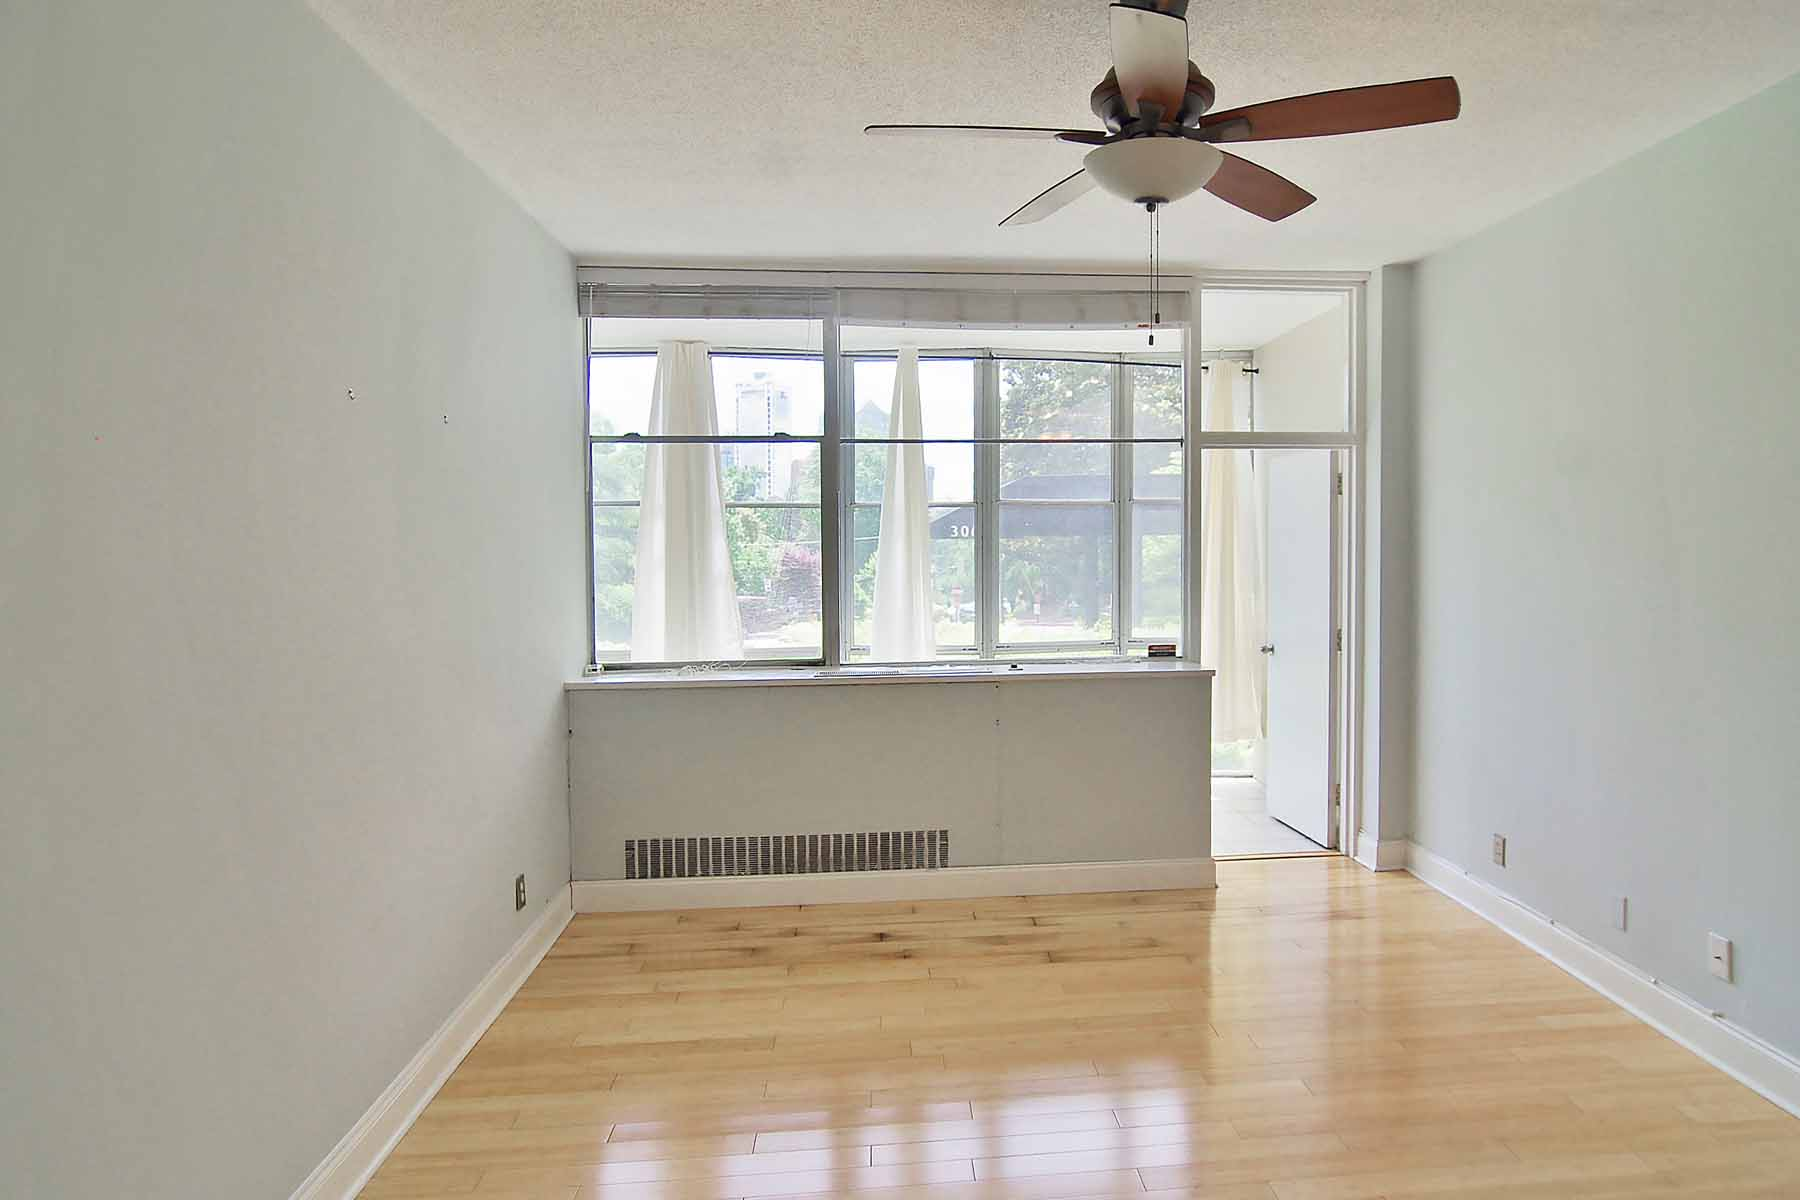 Park The Car!  You Will Not Need One At This Renovated One-Bedroom Condo! 3060 N Pharr Court NW Unit 119A Atlanta, Georgia 30305 États-Unis